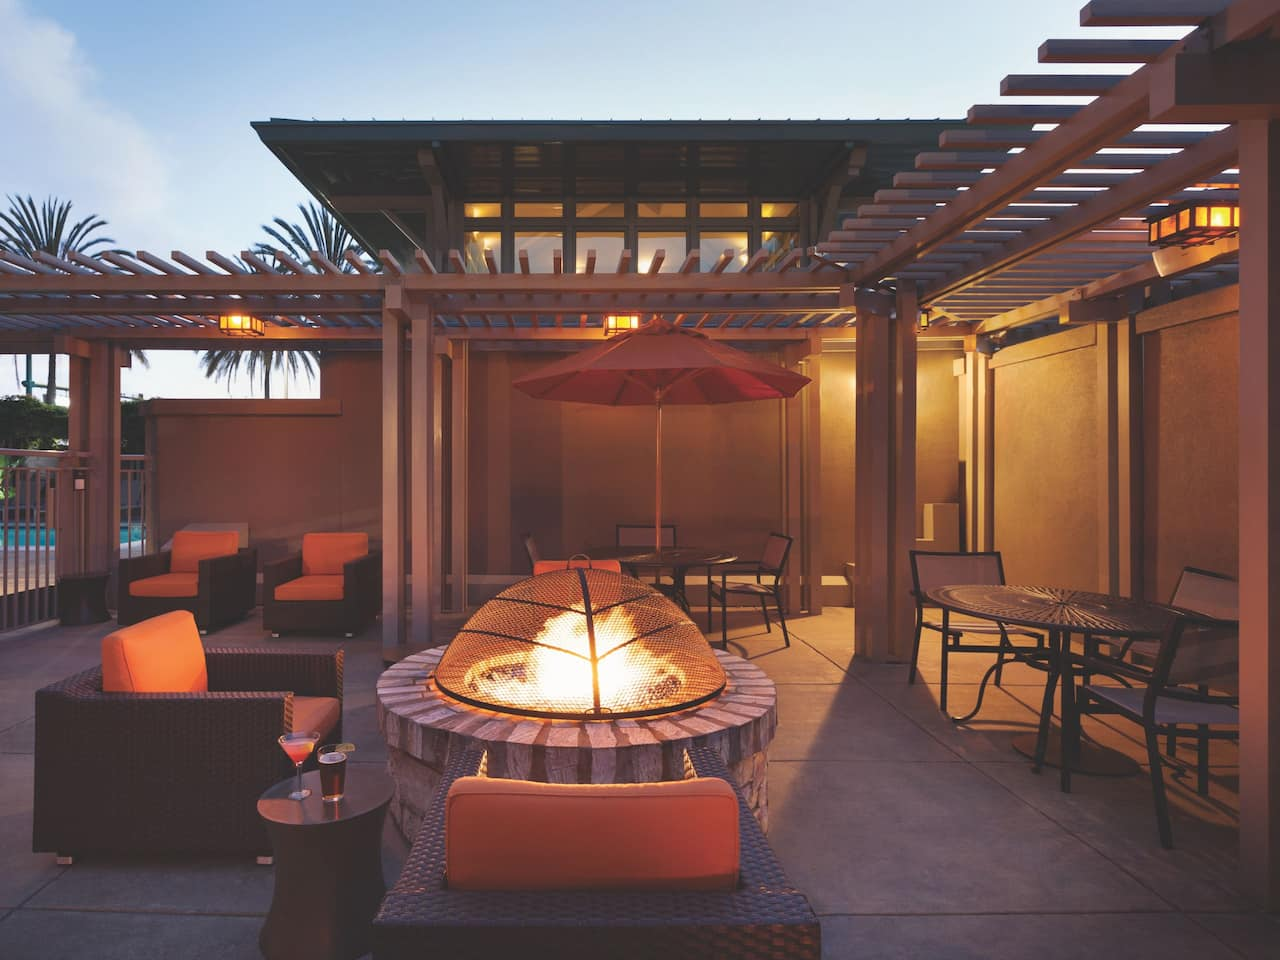 Outdoor Fireplace Hyatt House Emeryville / San Francisco Bay Area